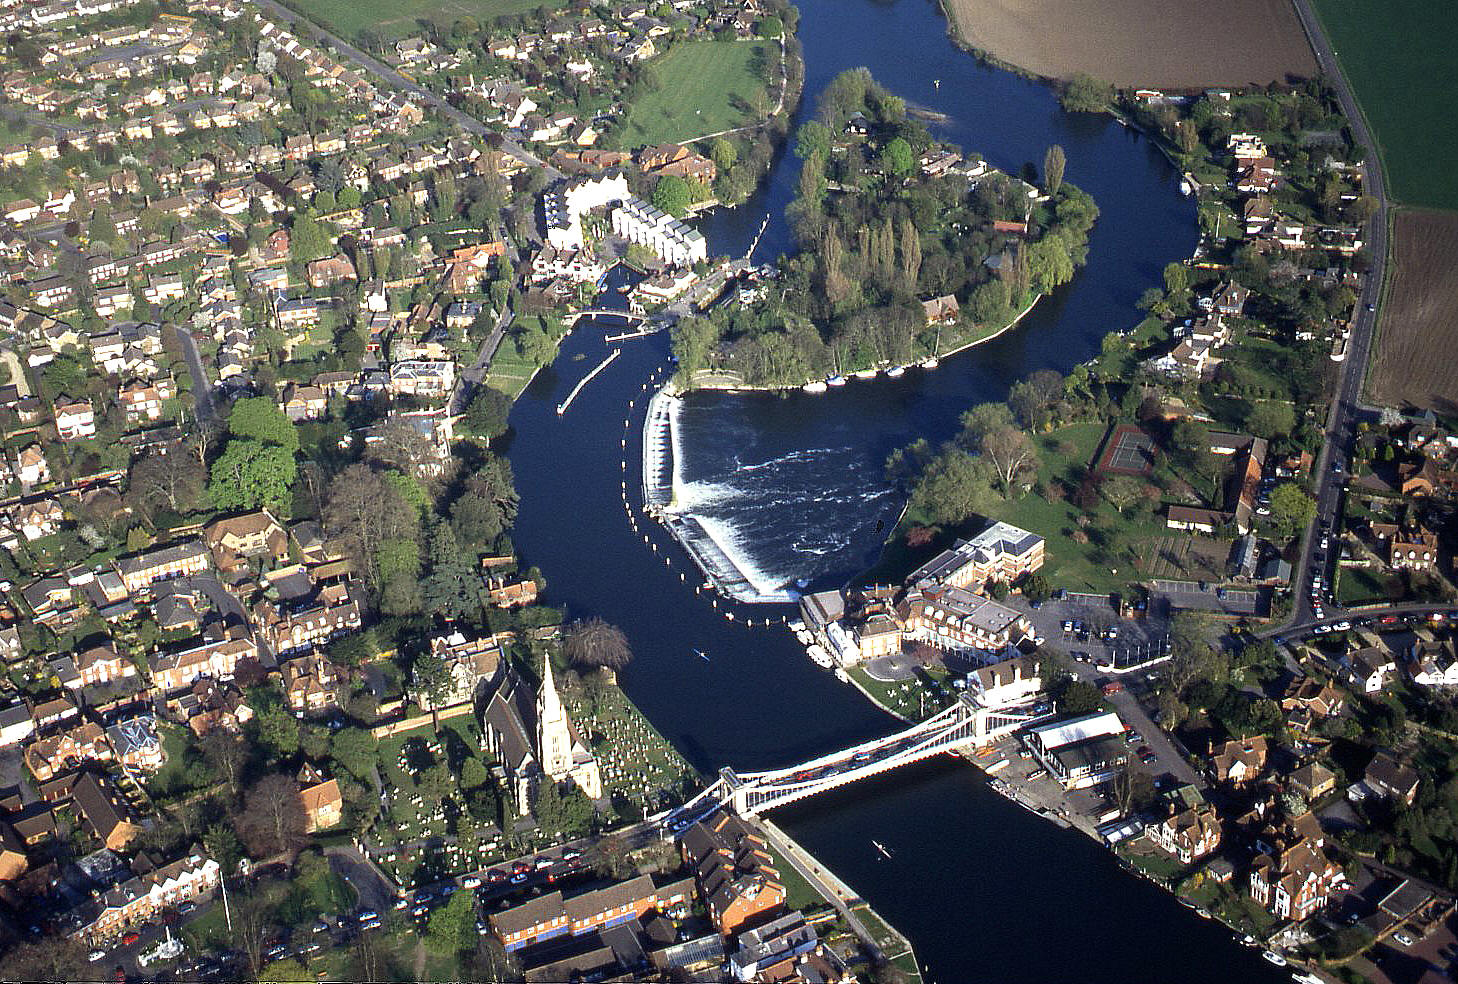 Marlow on the river Thames in Buckinghamshire